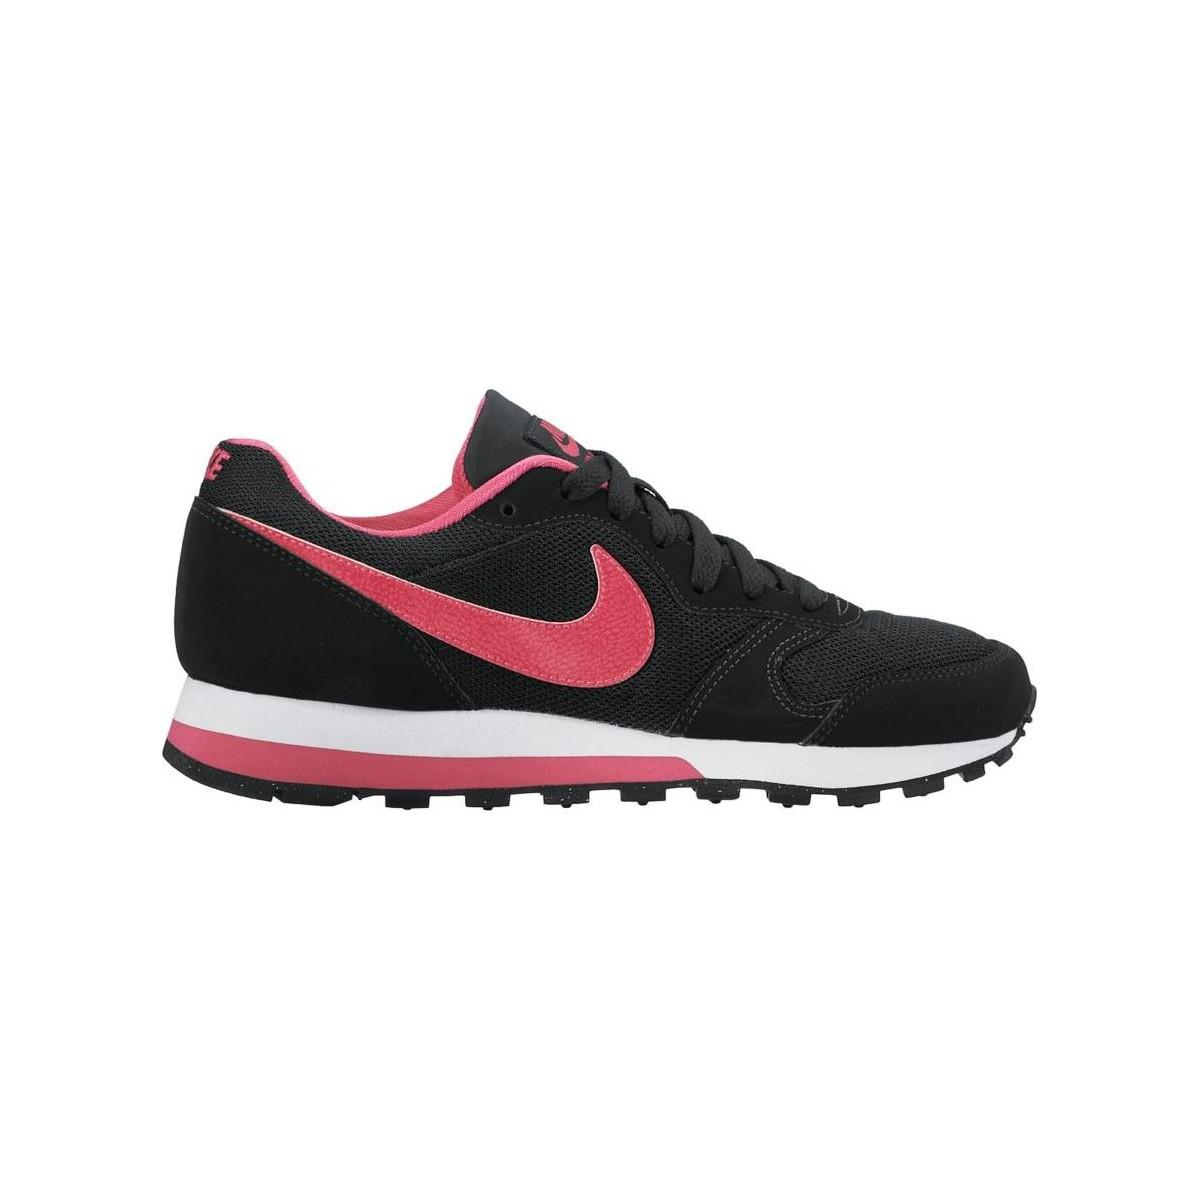 052f6f8ee1 Nike Girls' Md Runner 2 (gs) Shoe 807319 006 Women's Shoes (trainers ...